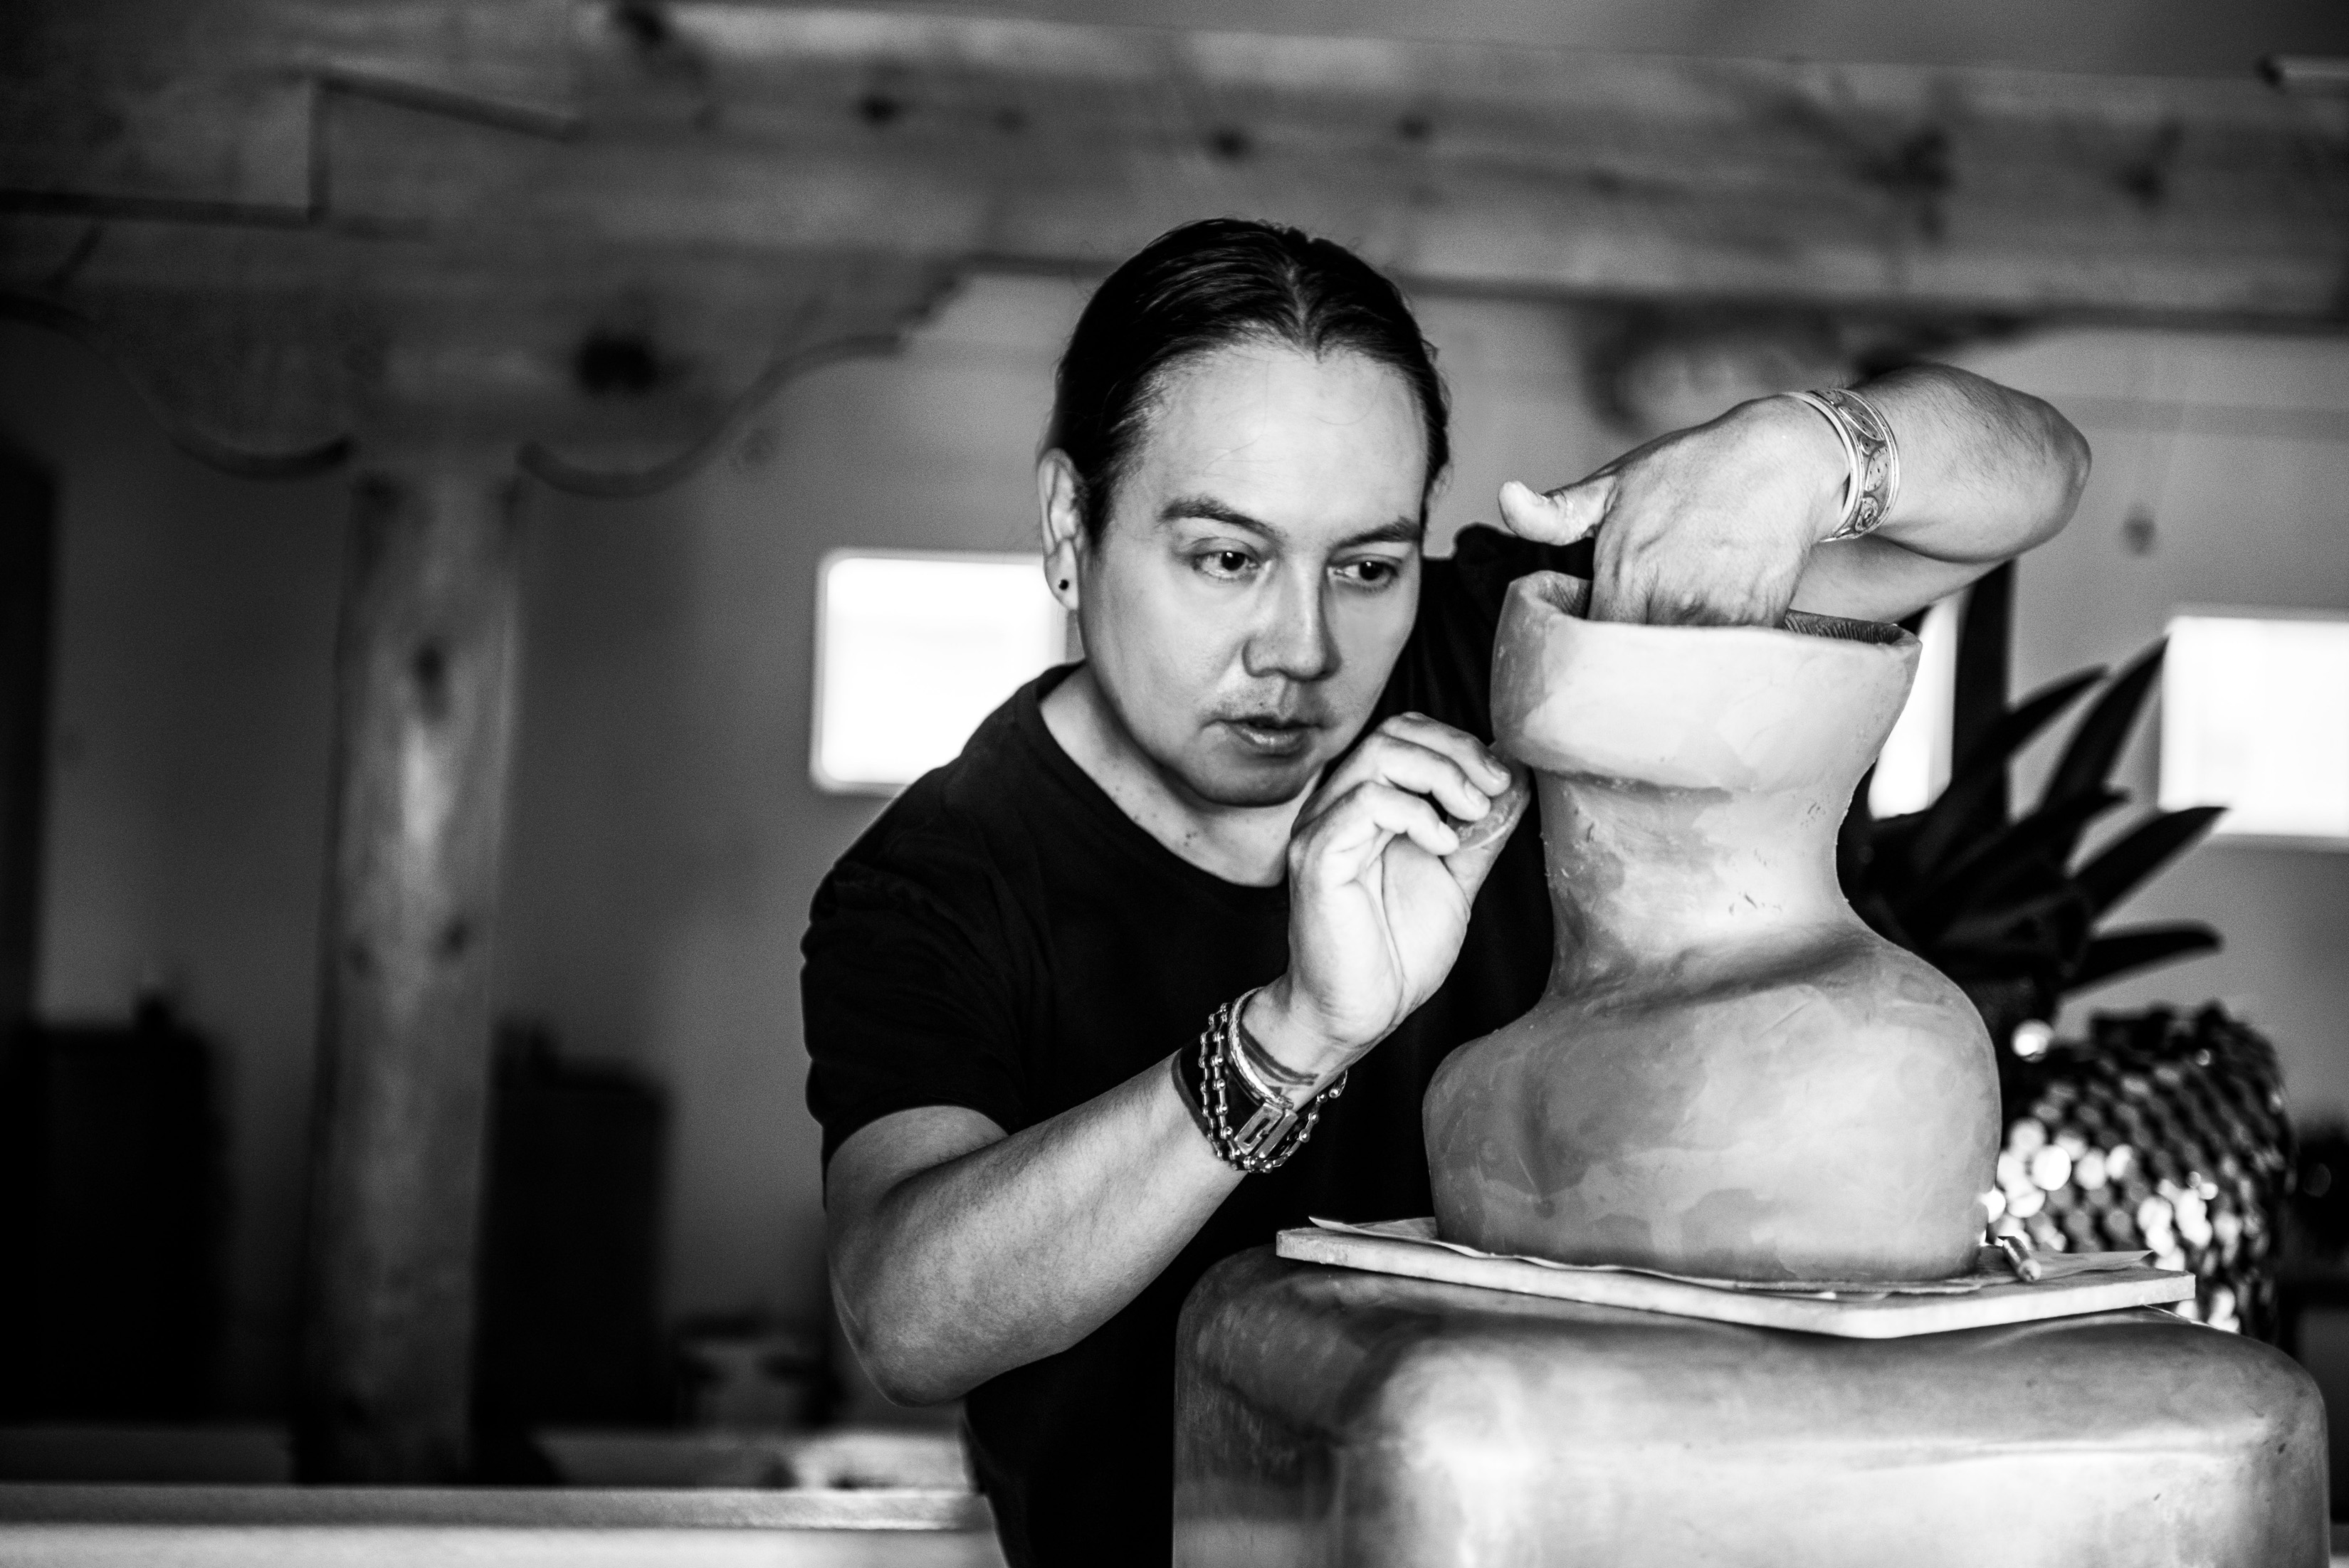 I'm an image! Virgil Ortiz sculpting clay by hand in his studio. Ortiz is focused on his work and not looking at the camera.